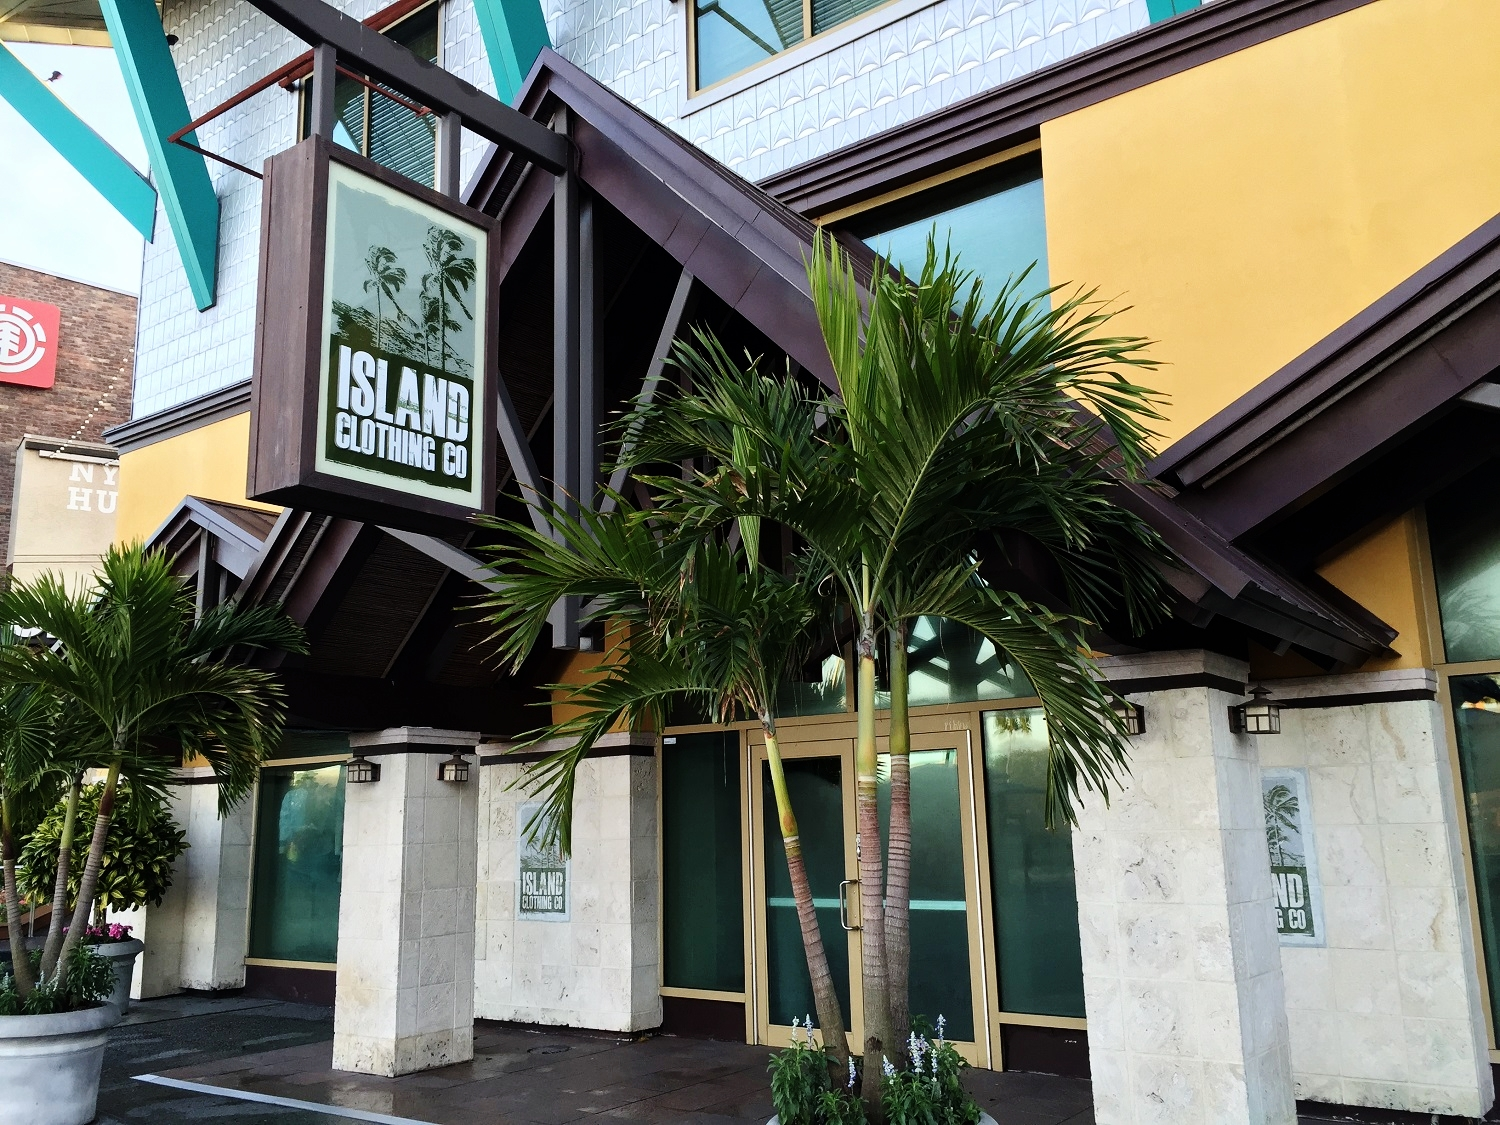 The Island Clothing Store in Universal CityWalk Orlando.